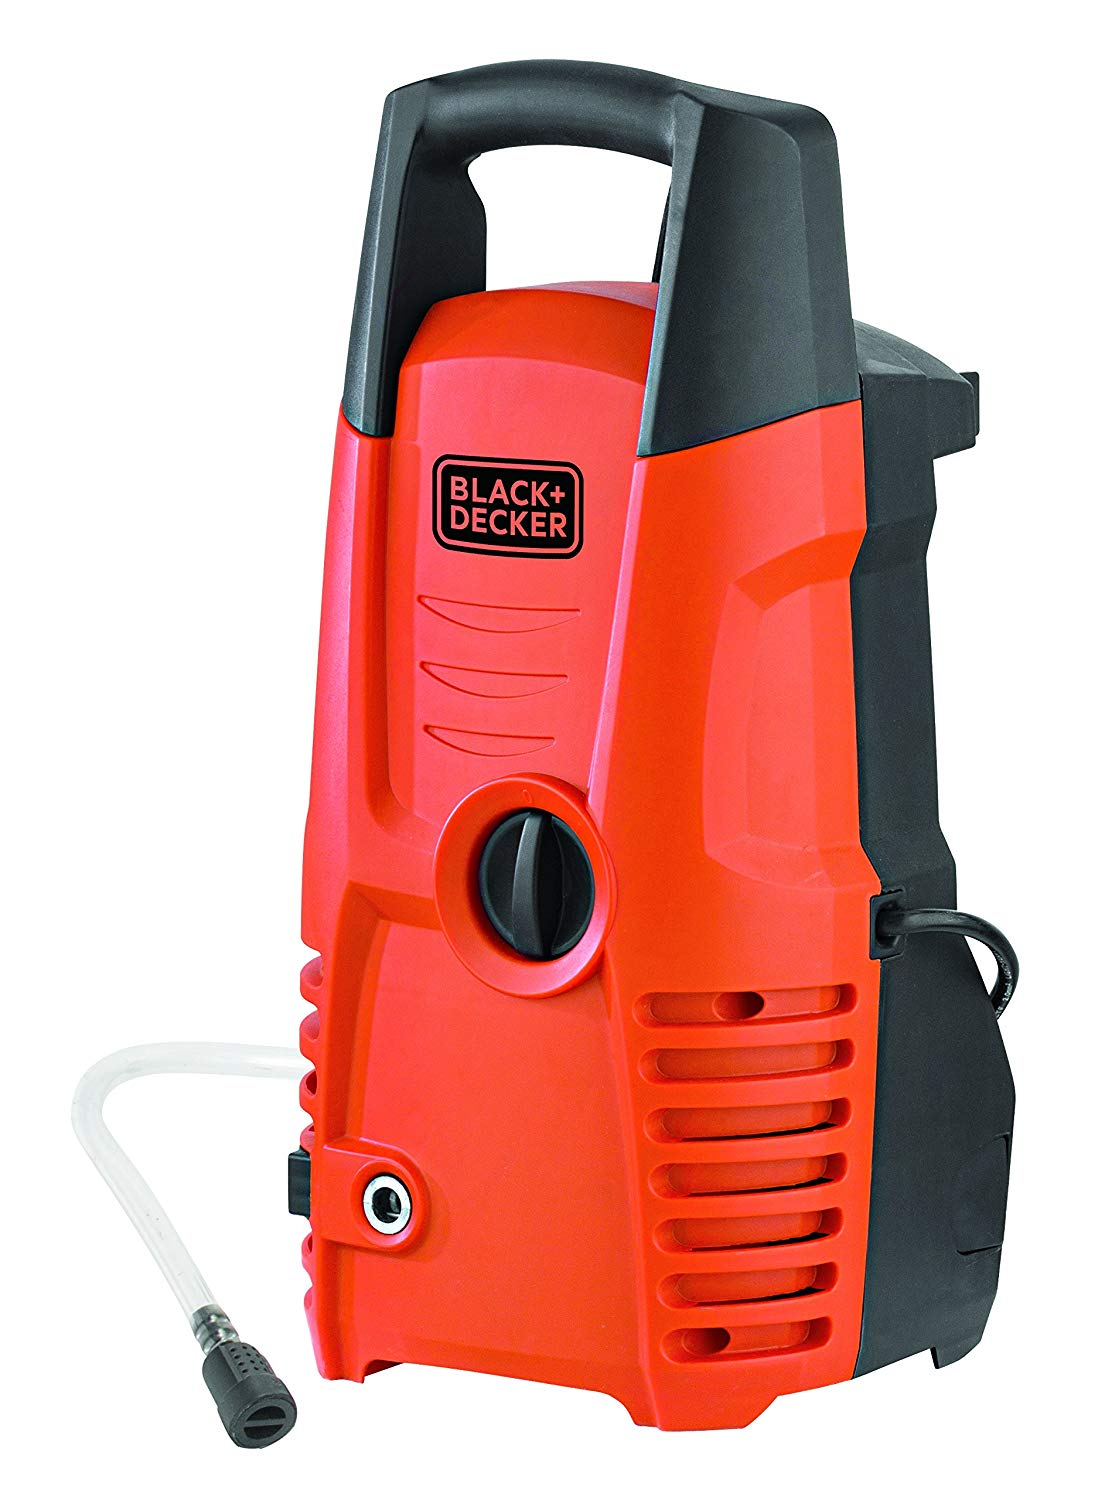 hidrolimpiadora black and decker 14075